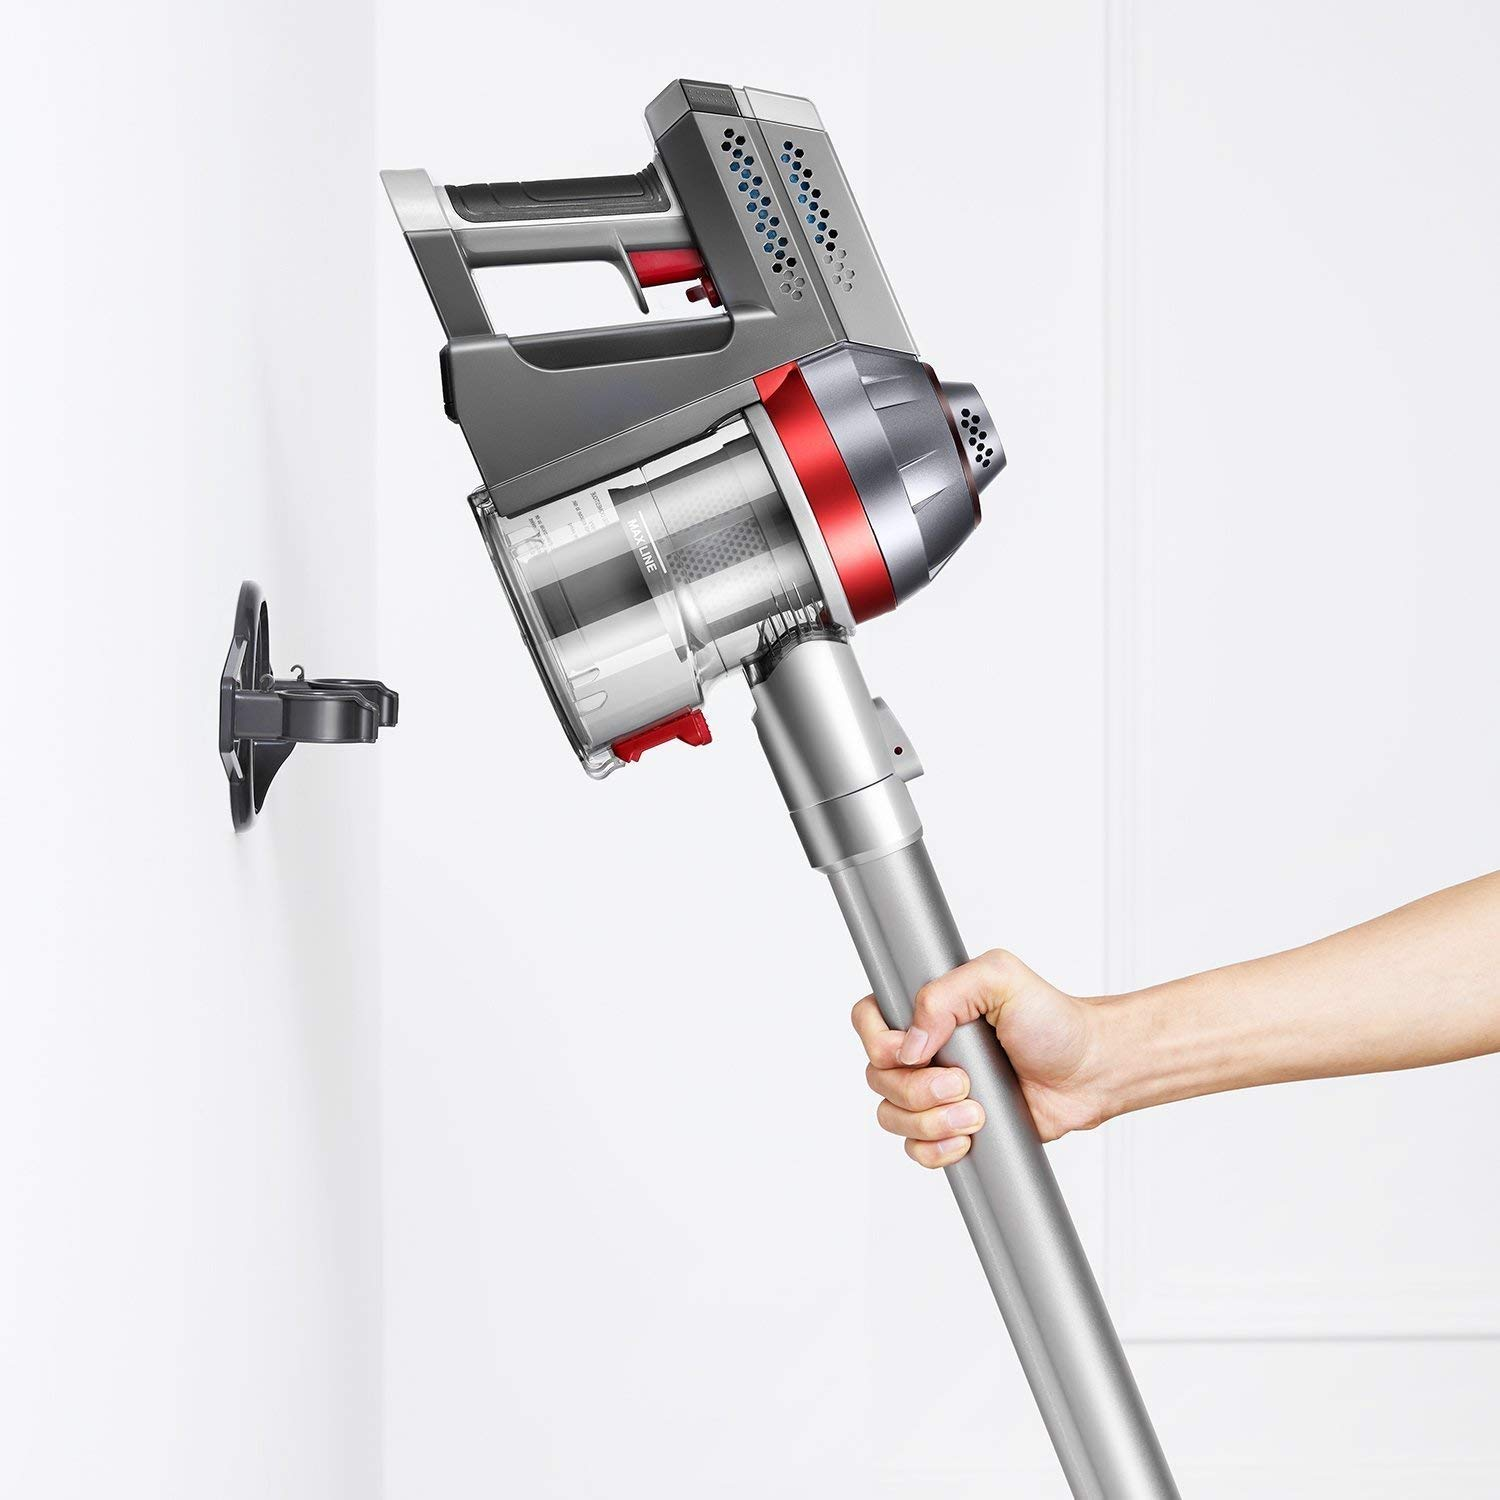 Deik-2-in-1-Cord-free-Handheld-Vacuum-Cleaner-Wall-Mount